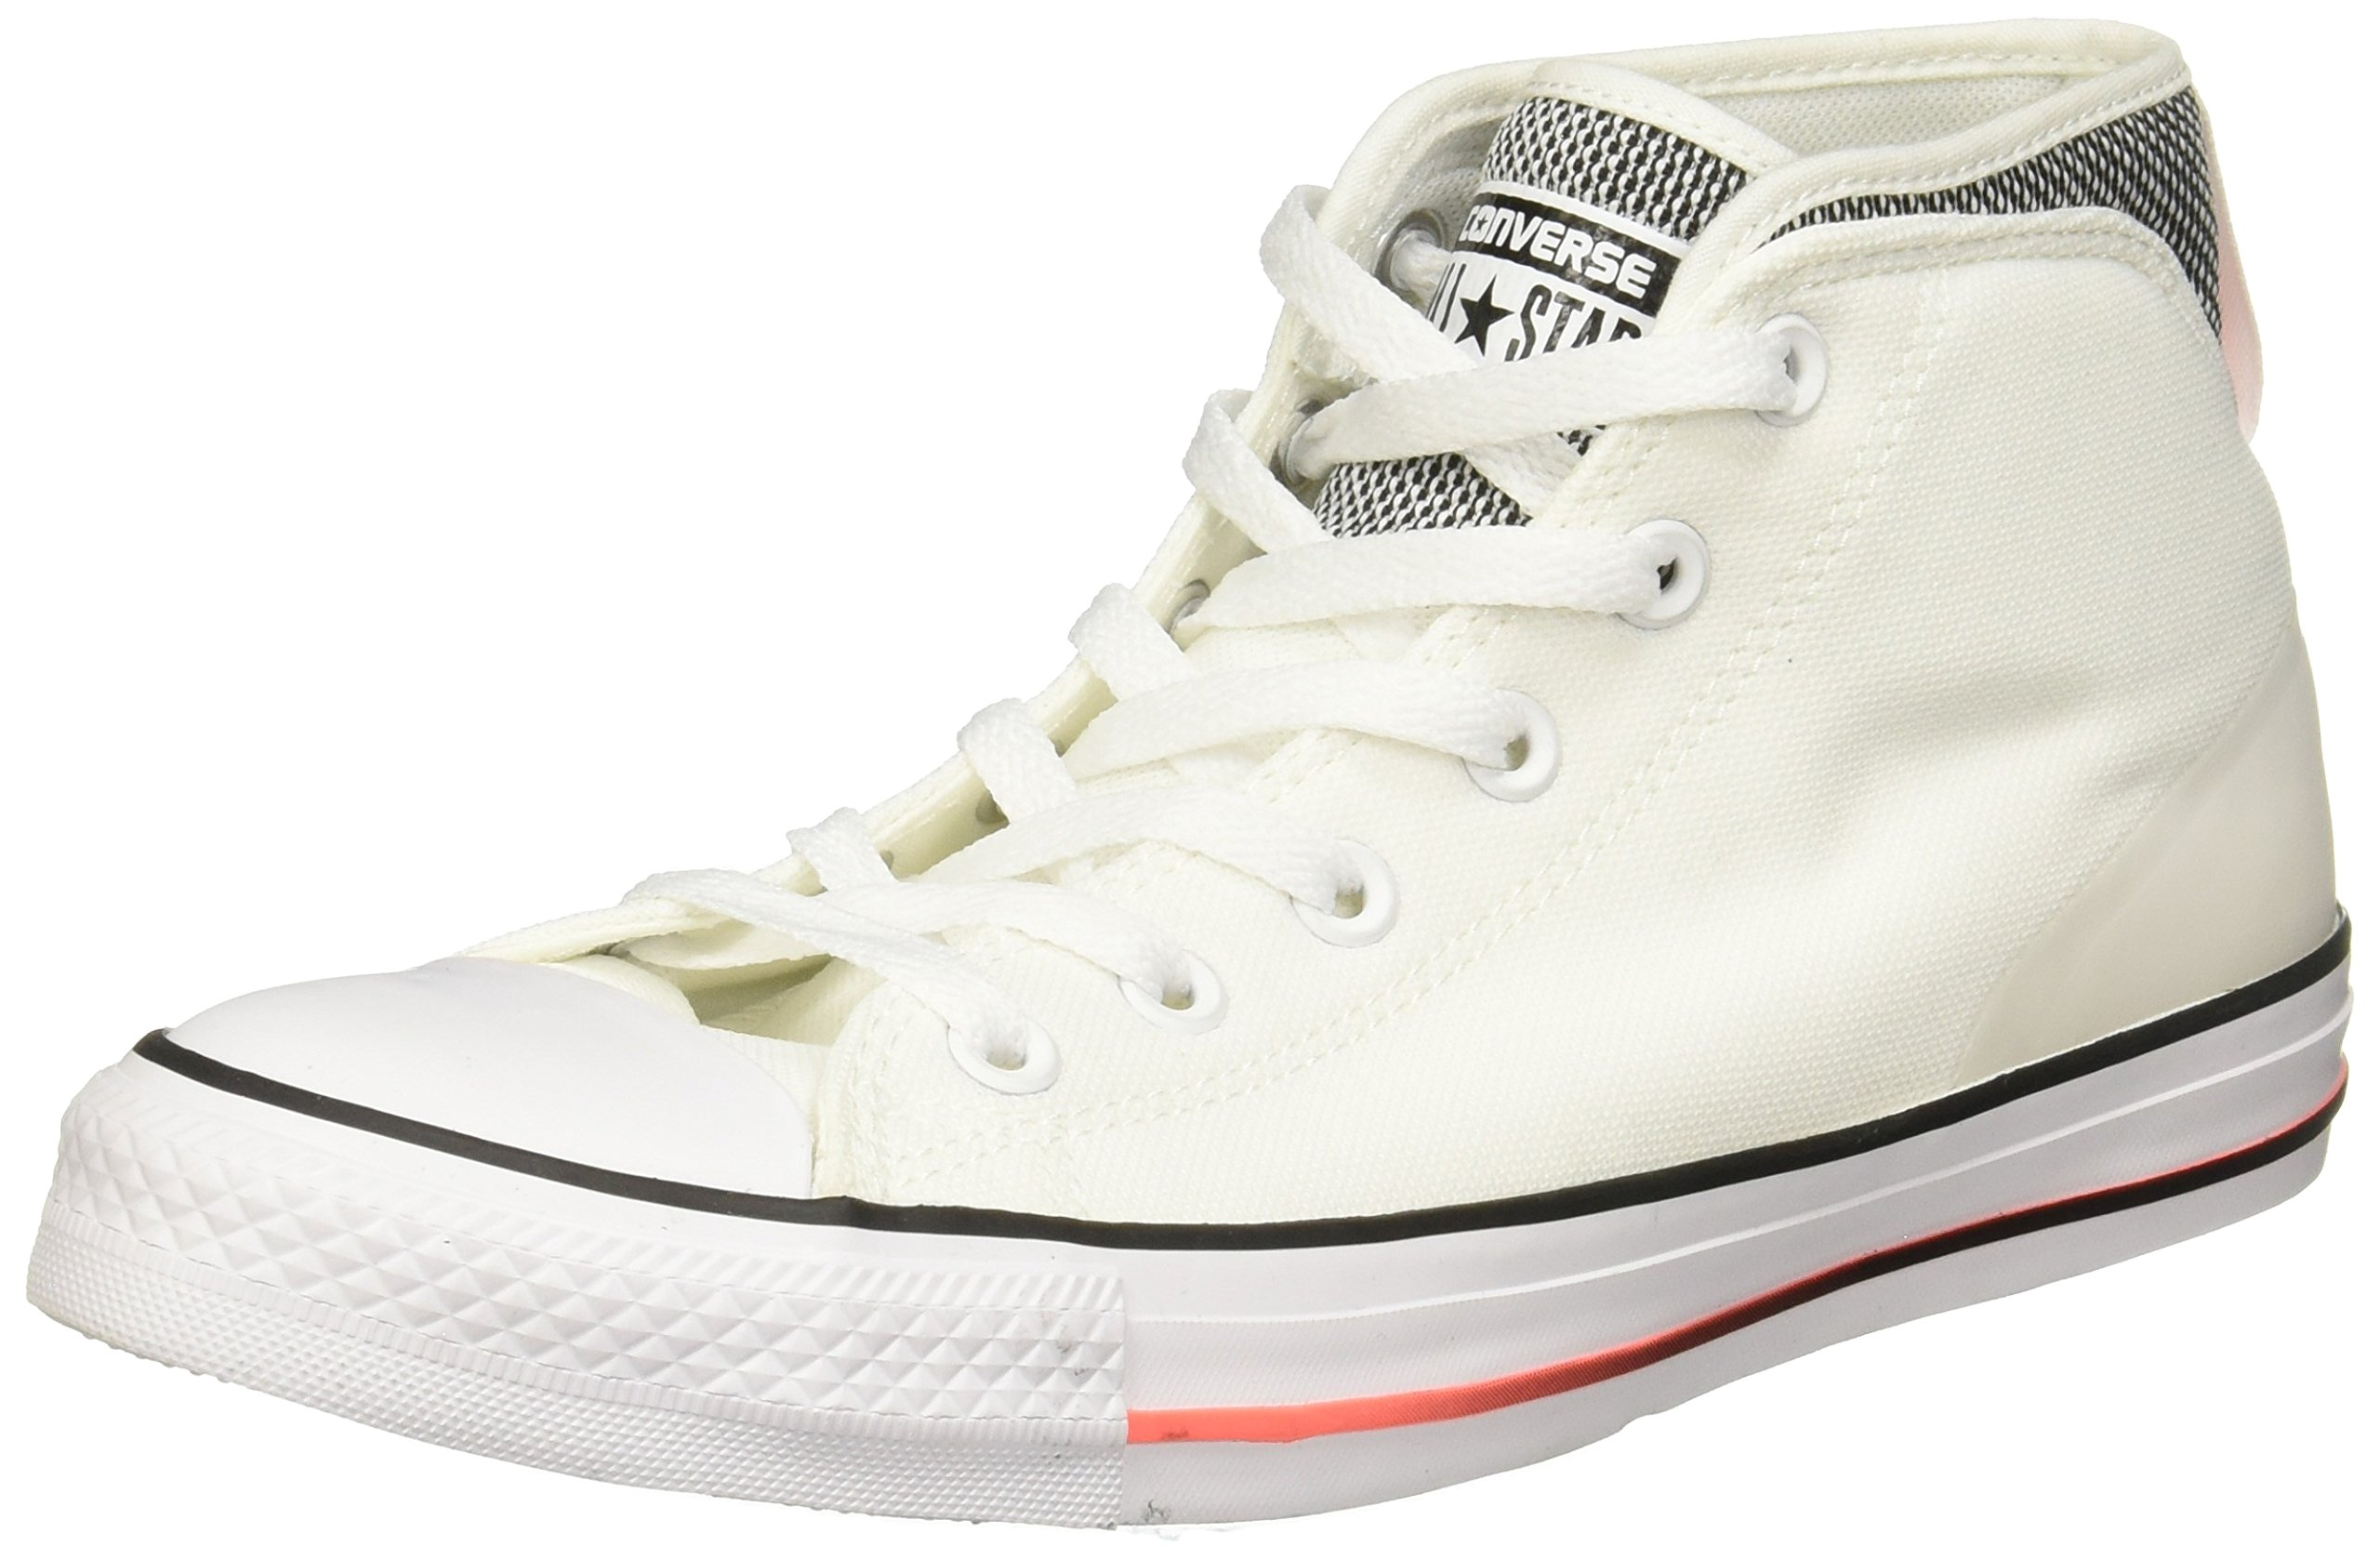 03dc3f4a0ab5c2 Galleon - Converse Unisex Chuck Taylor All Star Syde Street Mid White  Sneaker - 9 Men - 11 Women